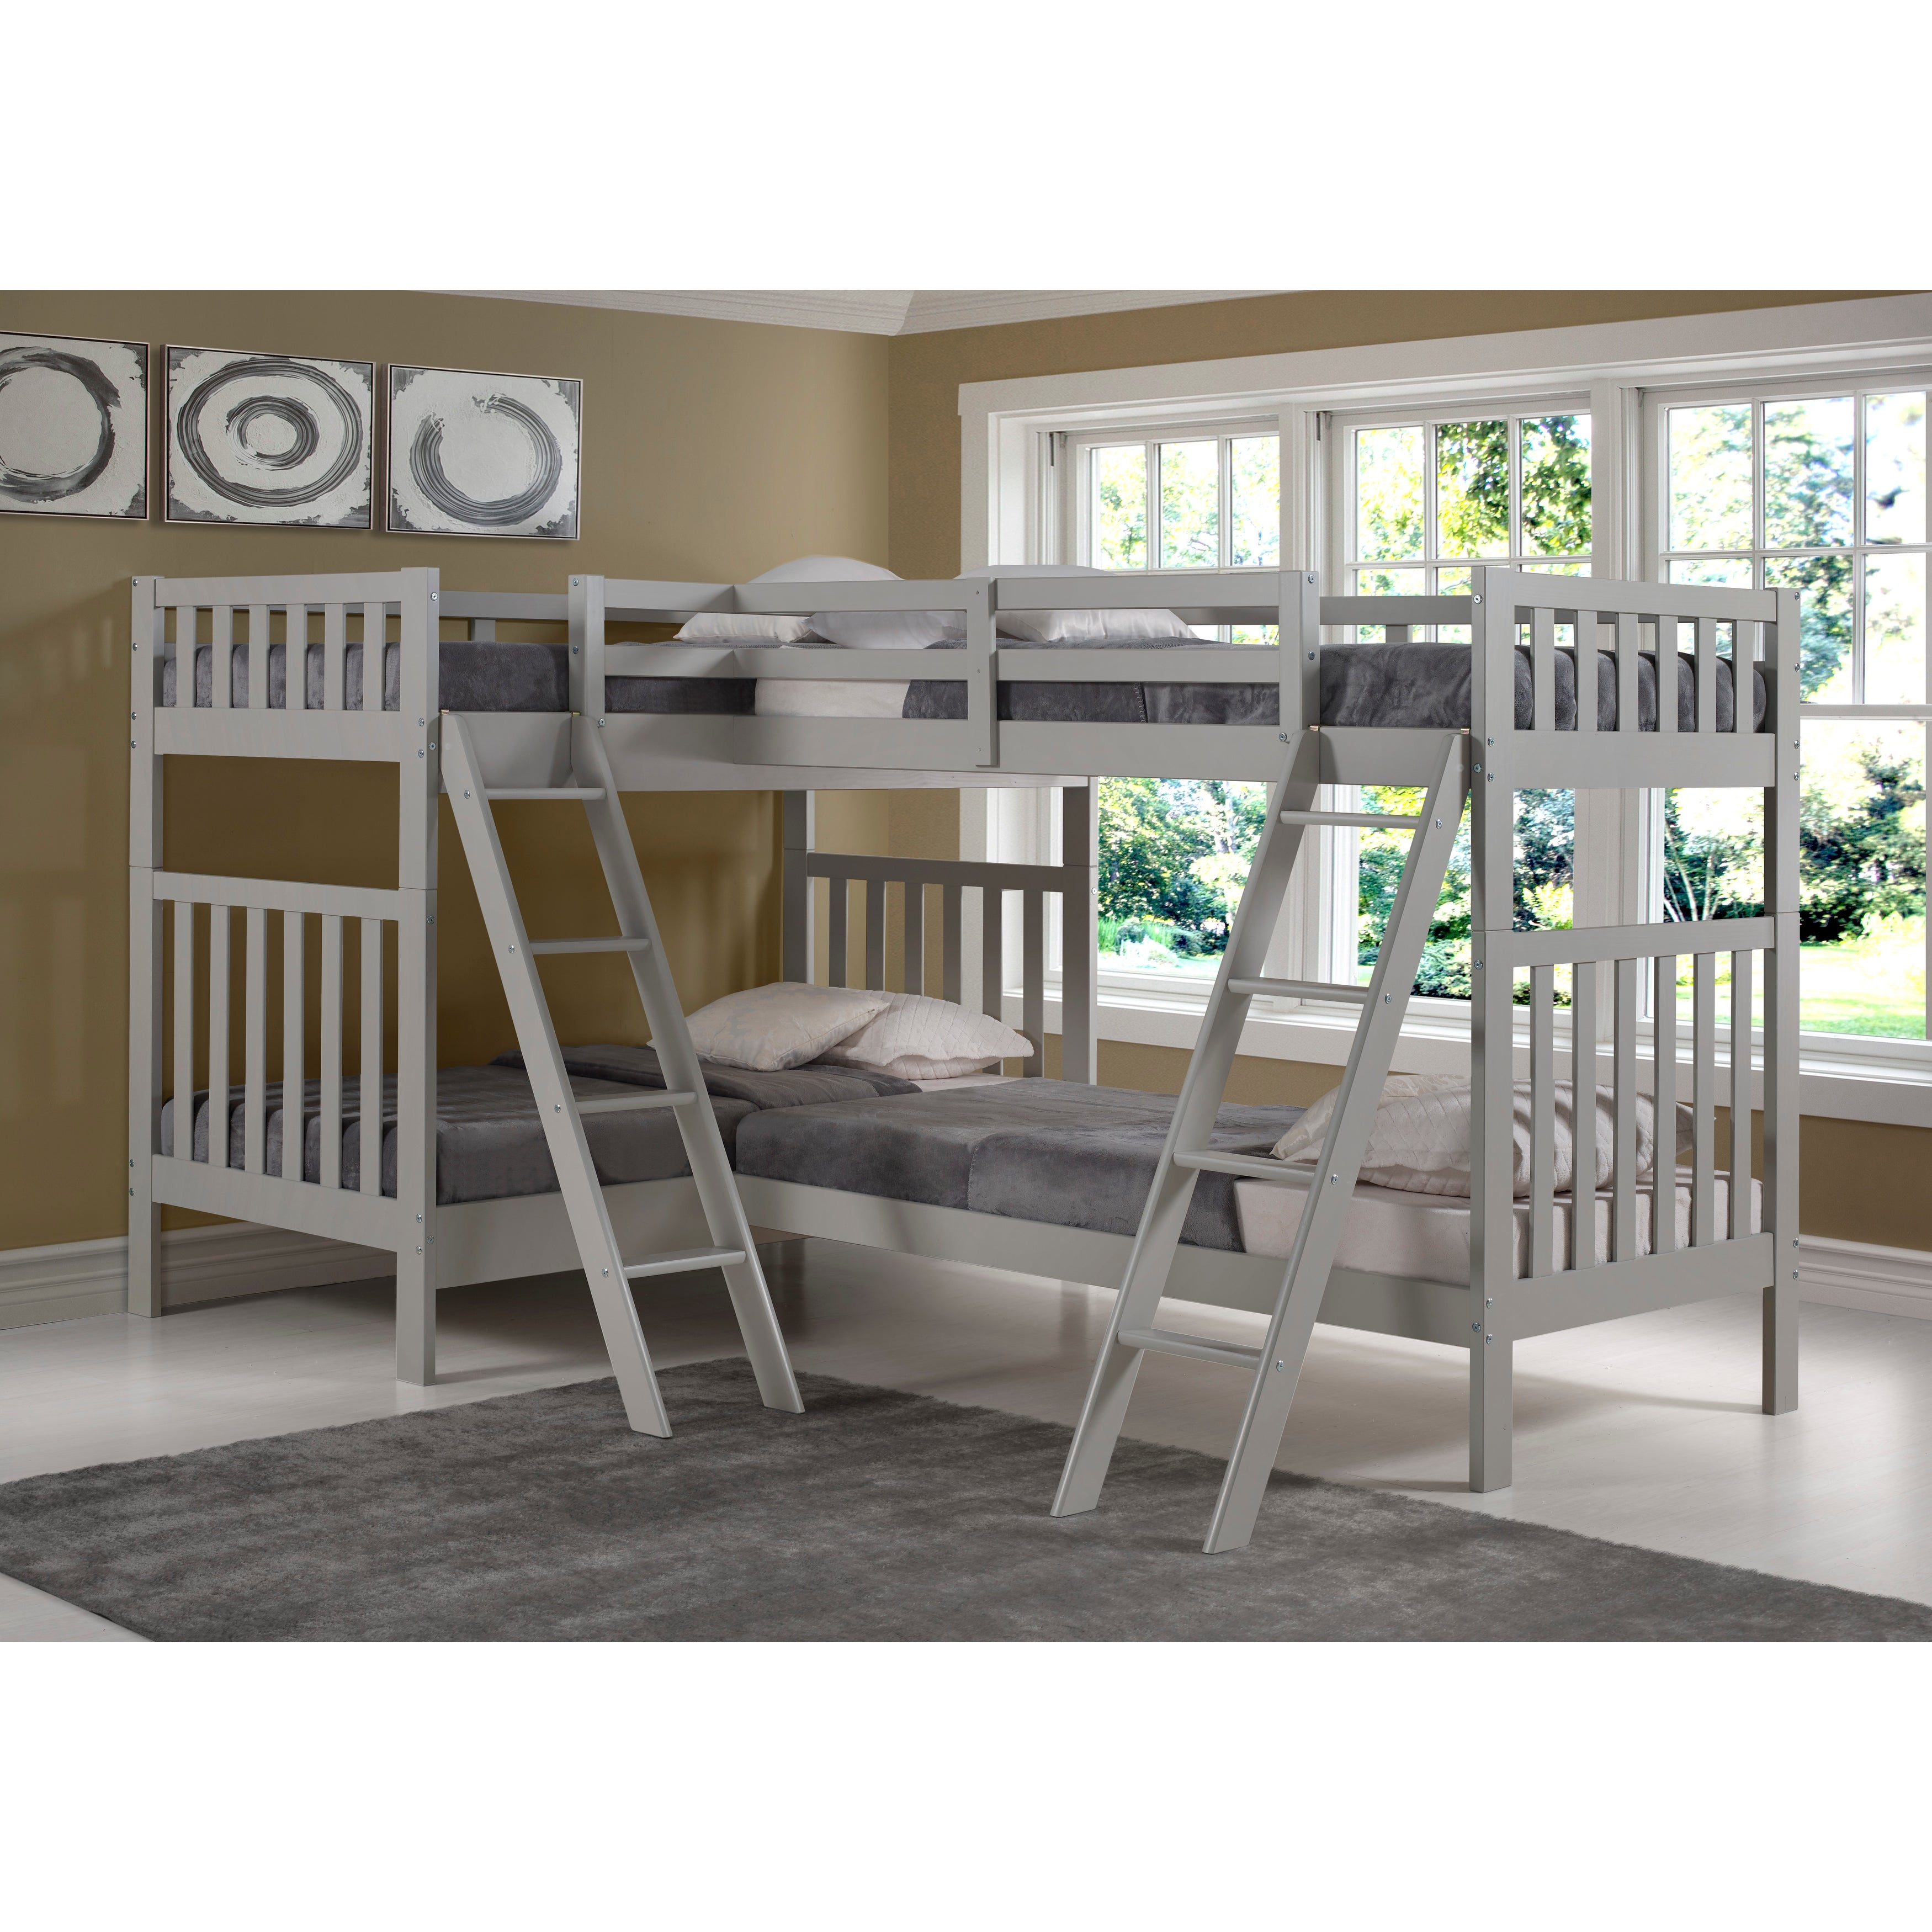 Aurora Solid Wood Twin Over Twin Bunk Bed With Quad Bunk Extension Overstock 22406181